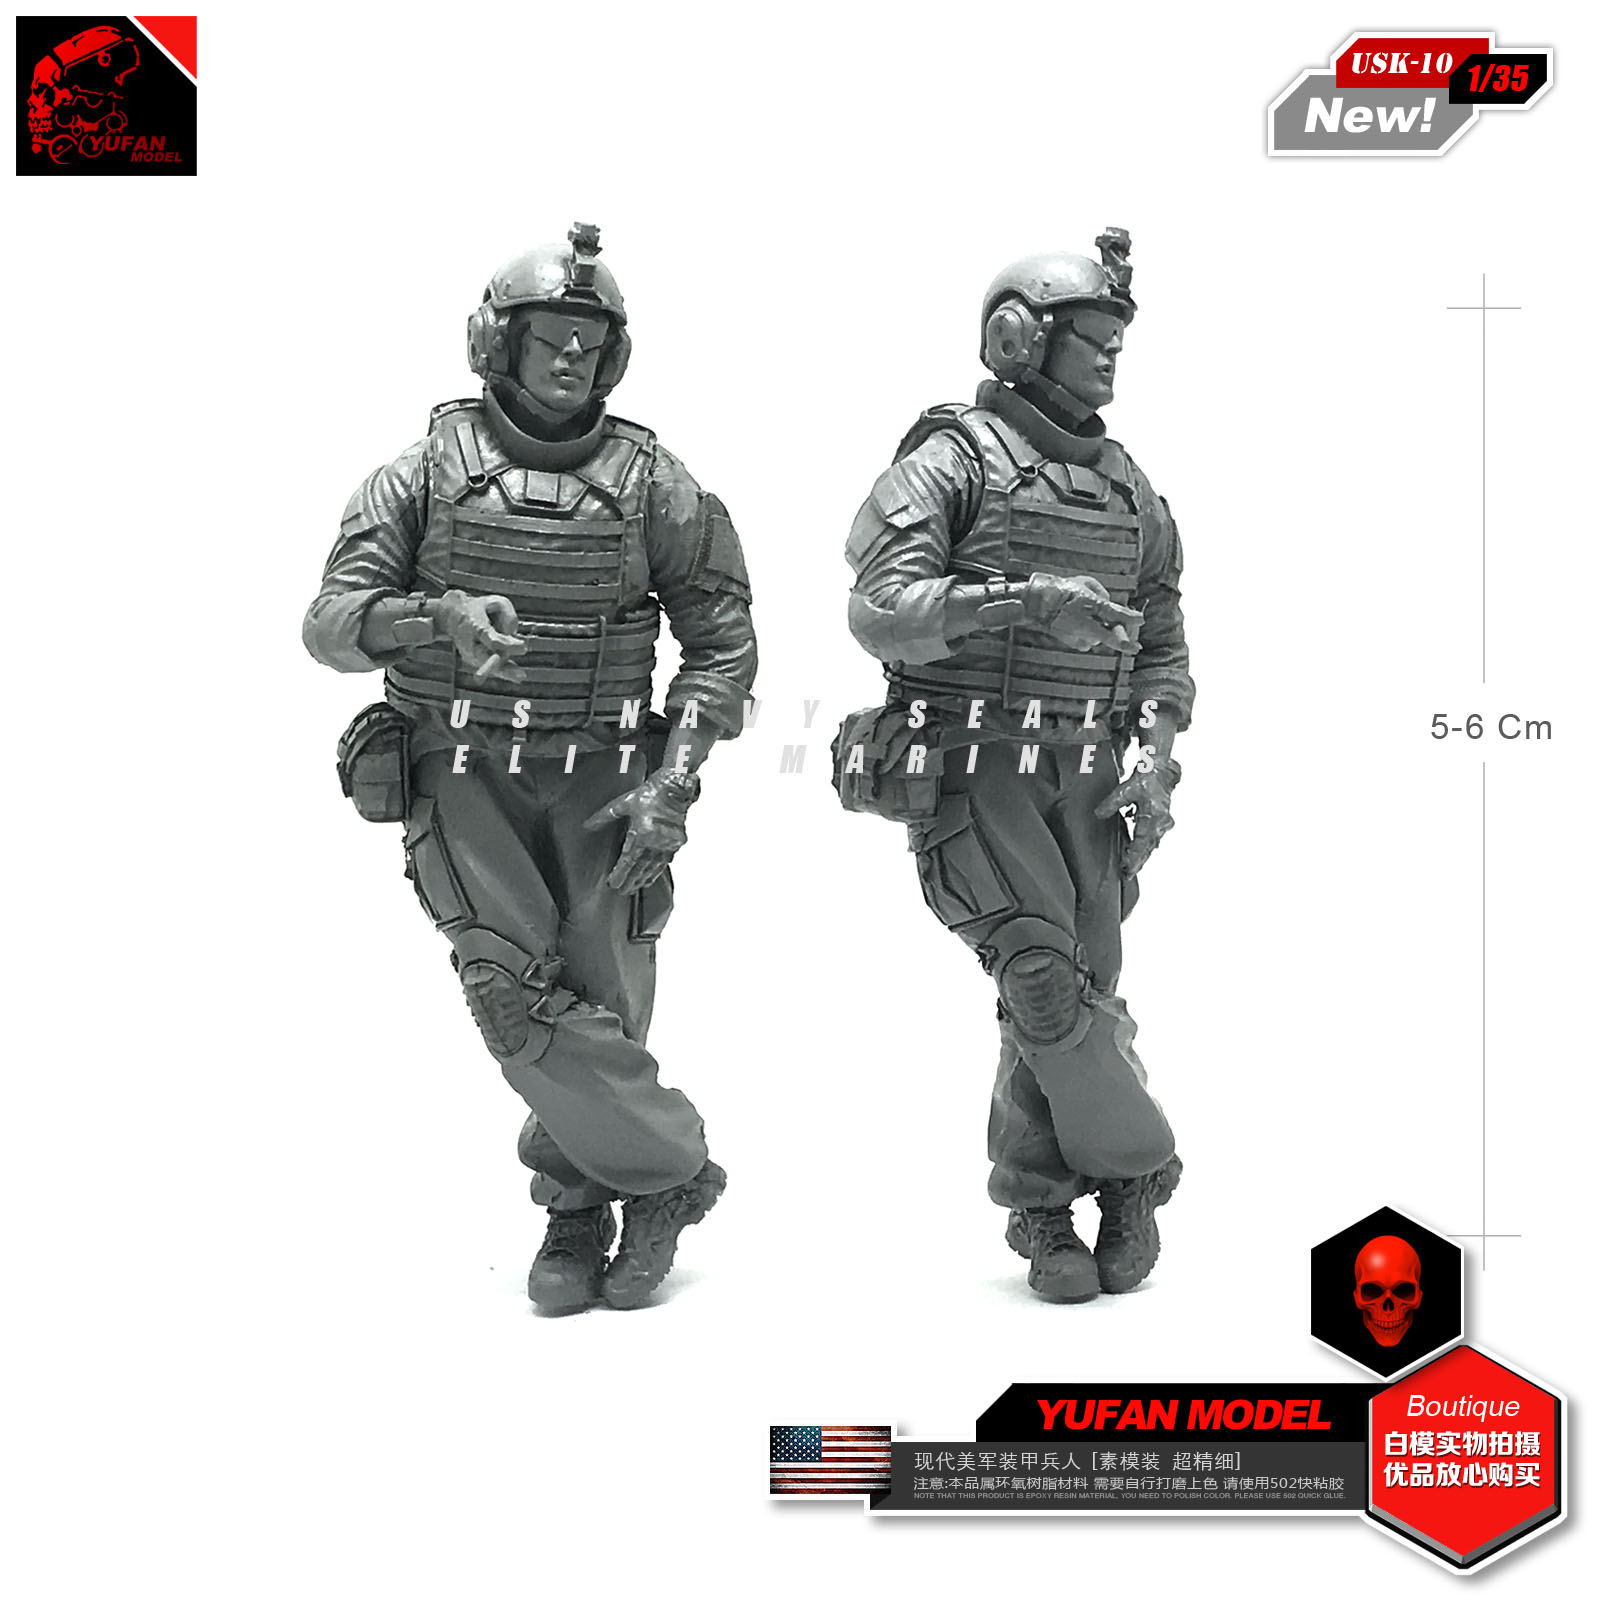 Yufan Model 1/35 Modern Armored Force Resin Soldier Model Kit Usk-10